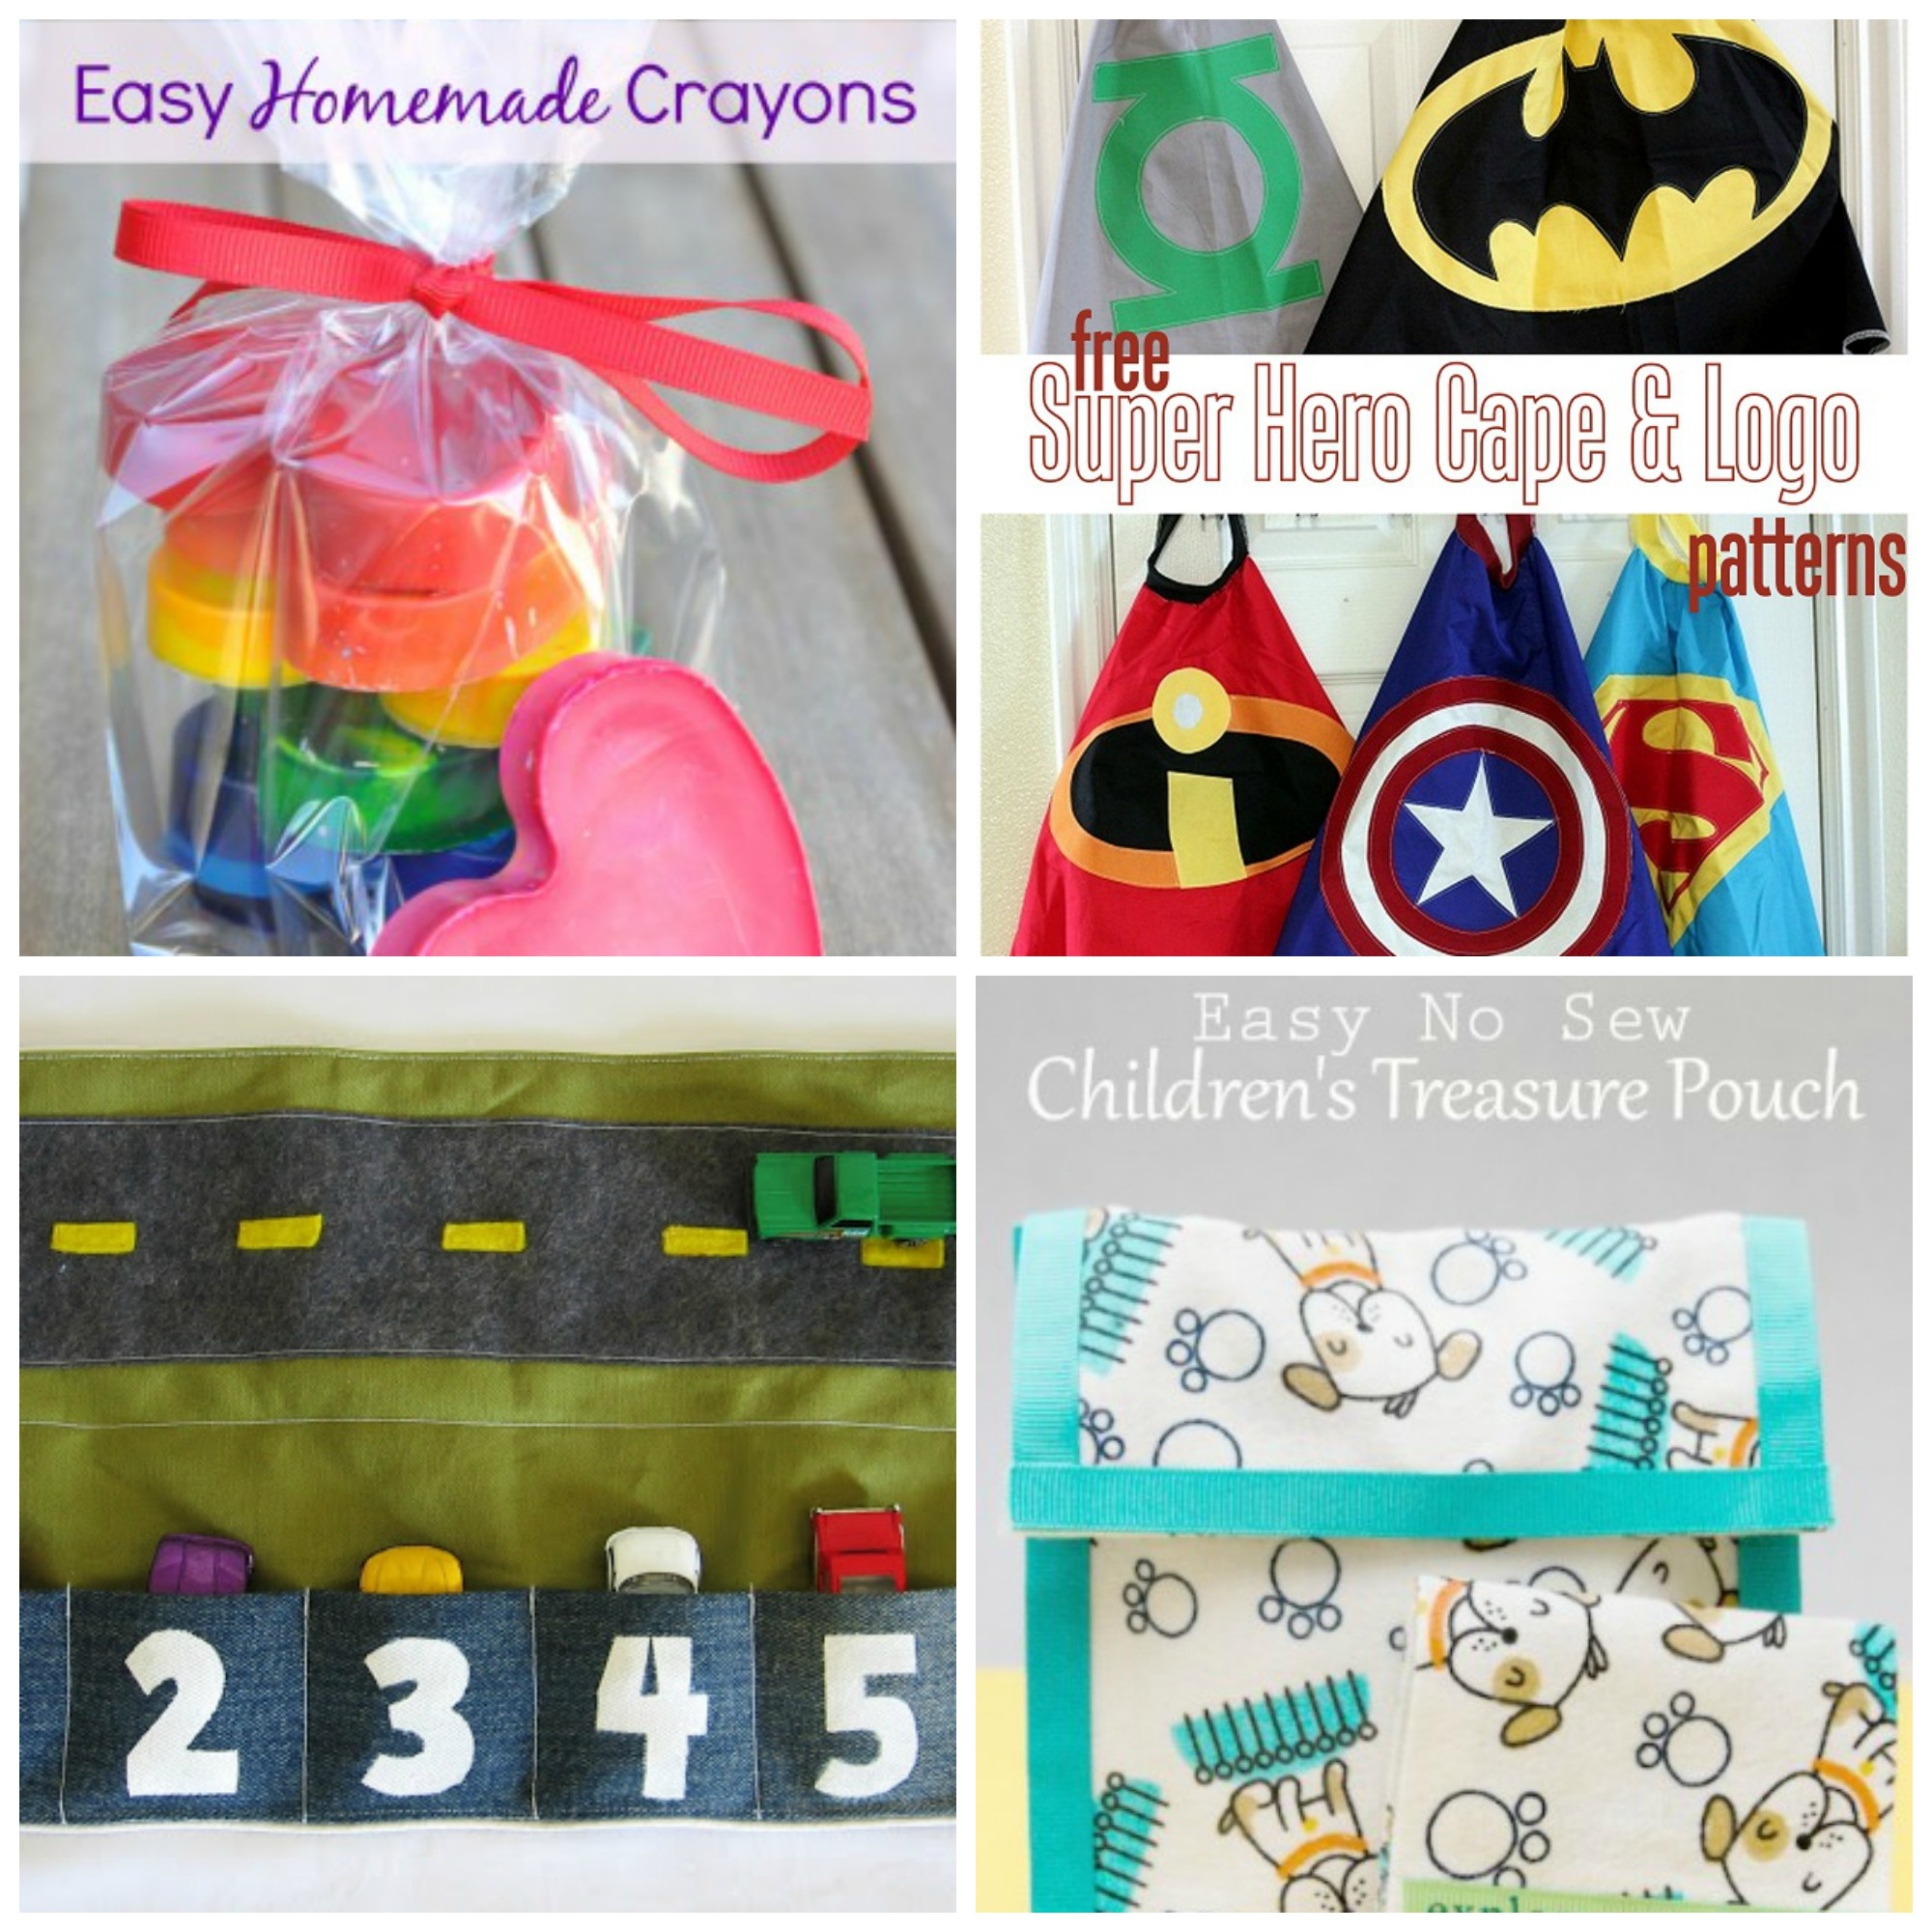 20 AWESOME Homemade Gift Ideas for Children My Frugal Adventures